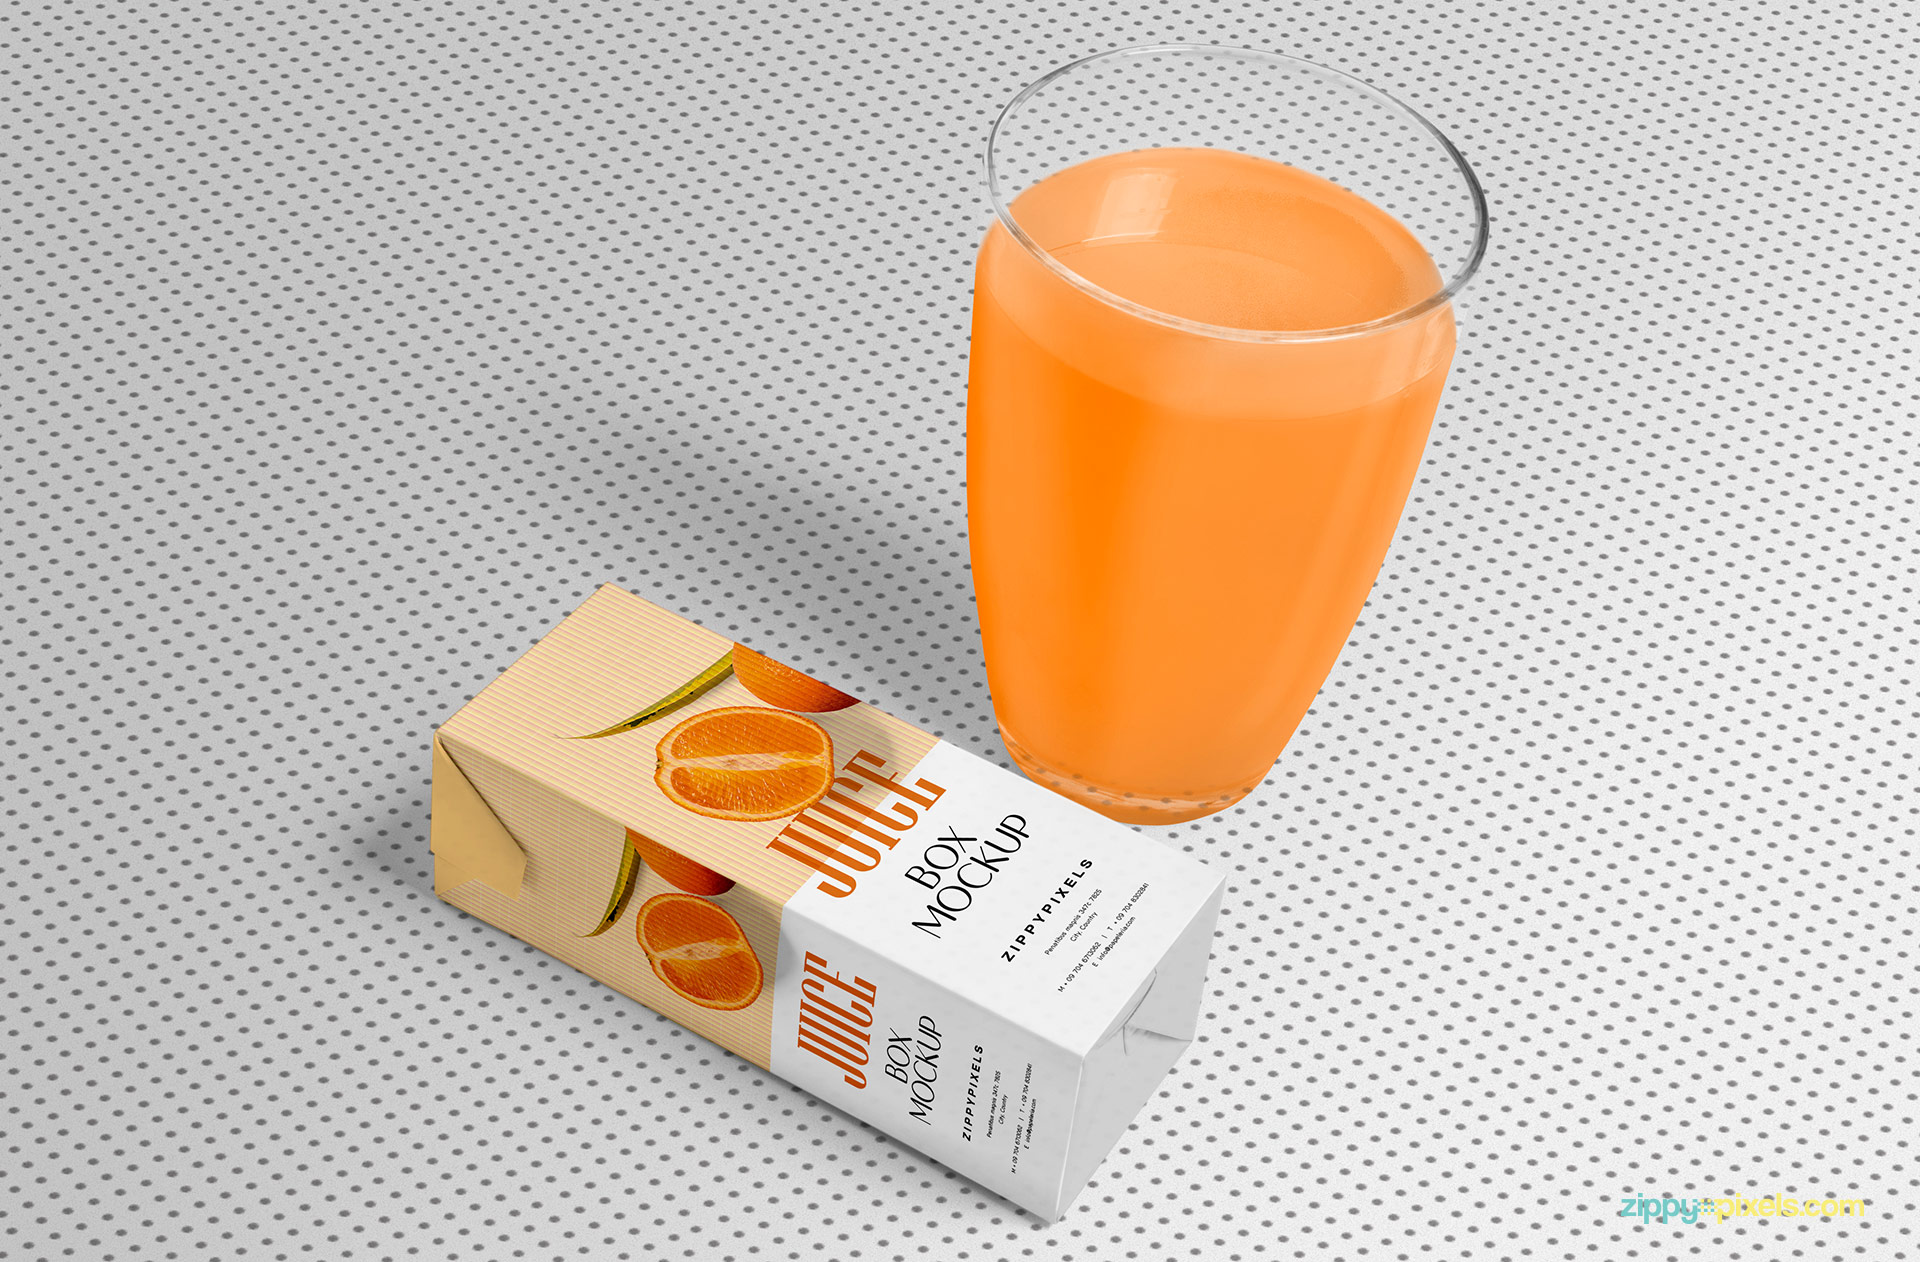 You can also change the textured background of the orange juice mockup.